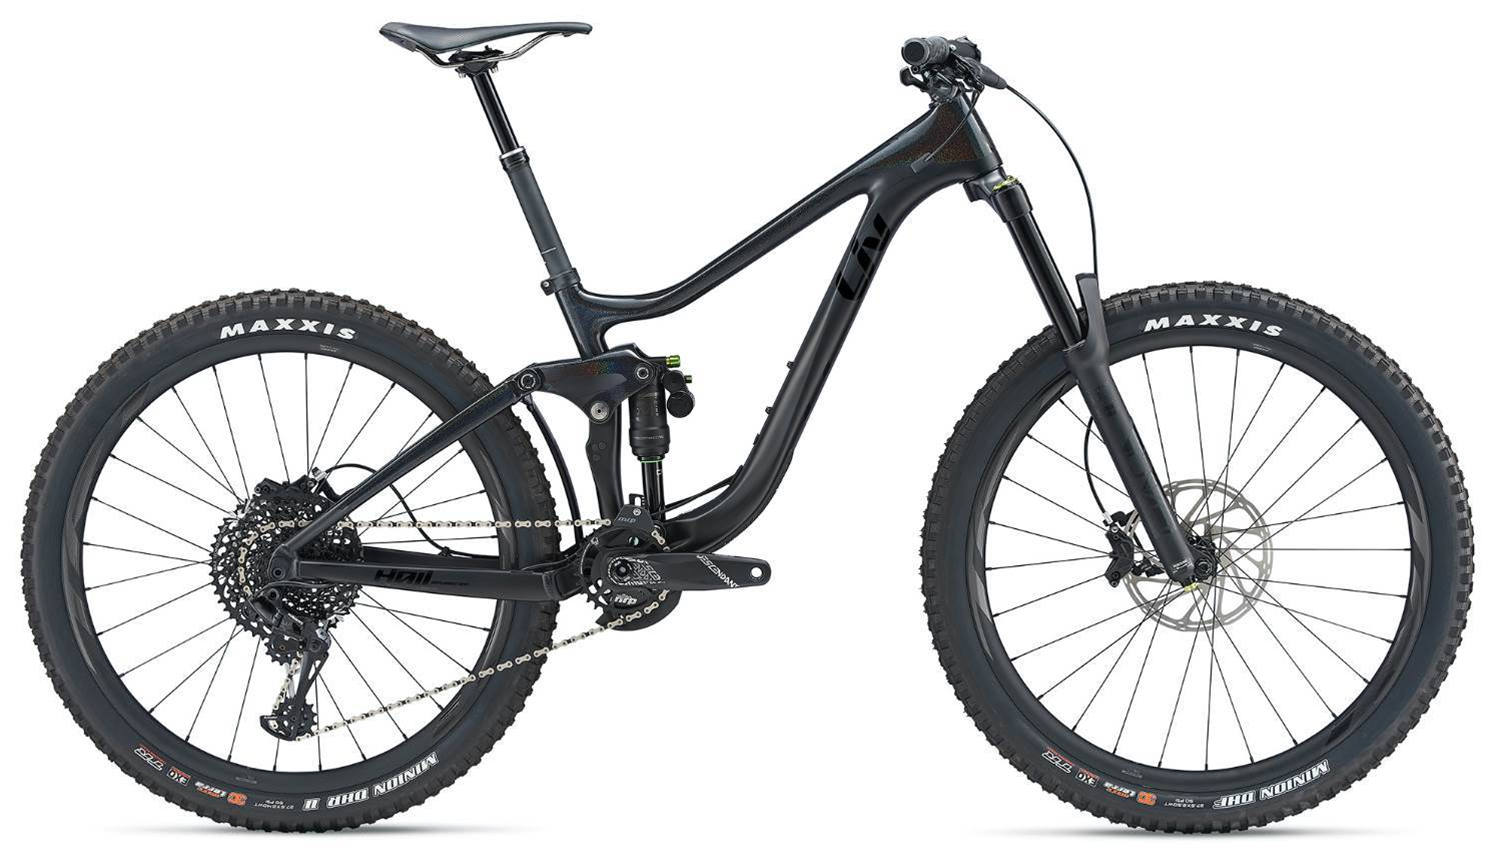 5e7ebdc0a85 The line up of bikes for the 2019 range from Liv sees some great additions  to expand the women's specific range.